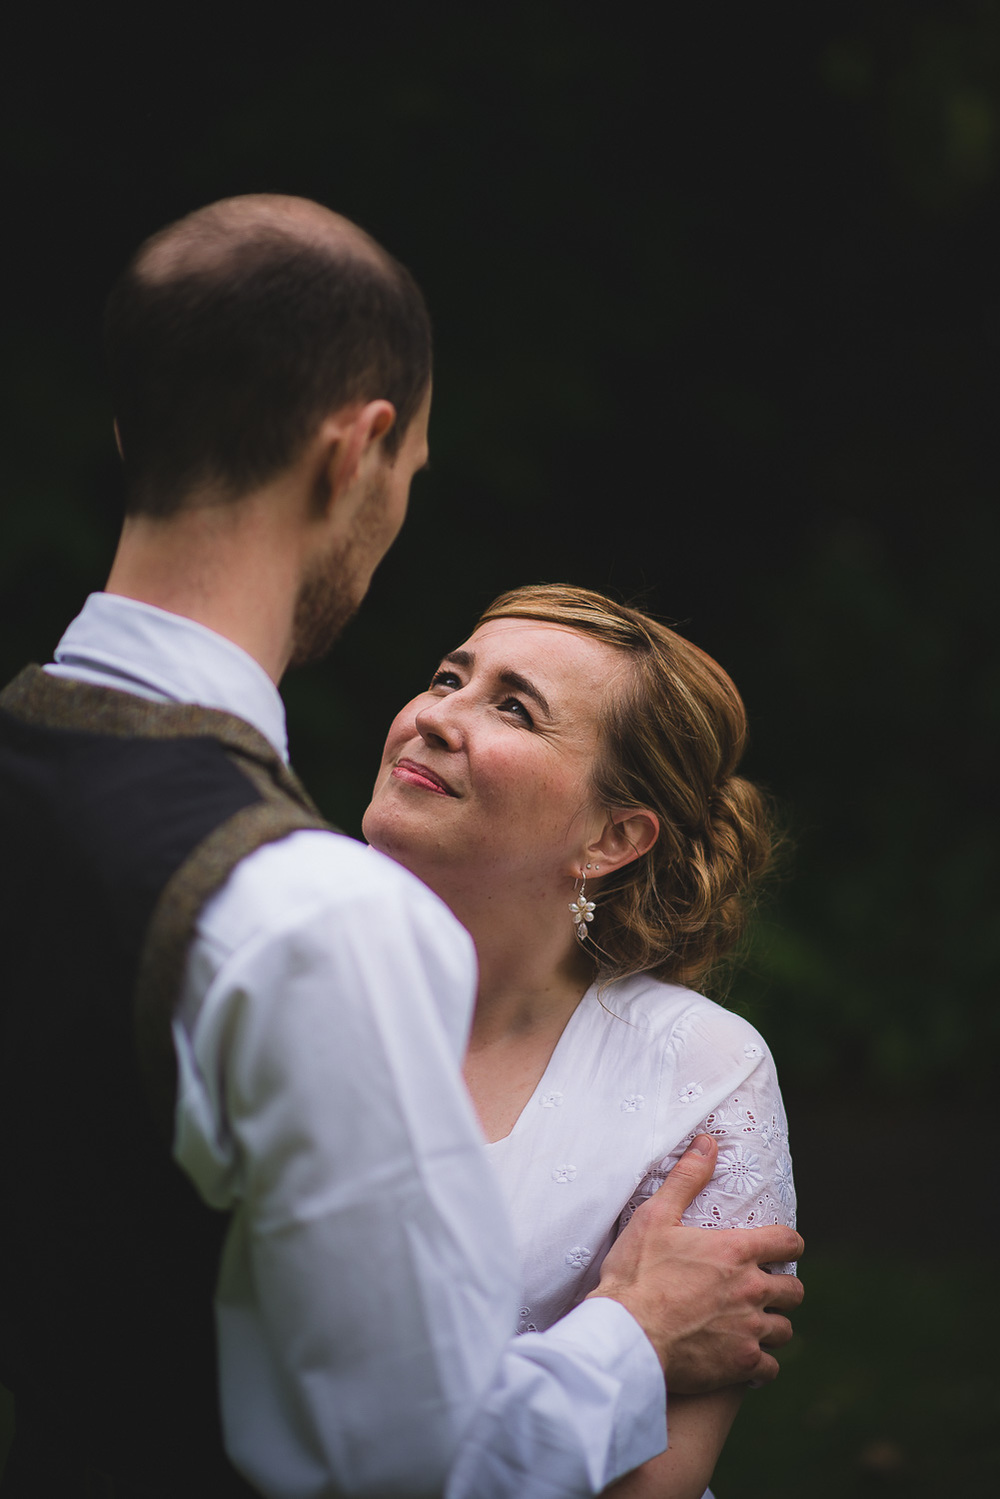 natural-wedding-photographer-bristol-23.jpg